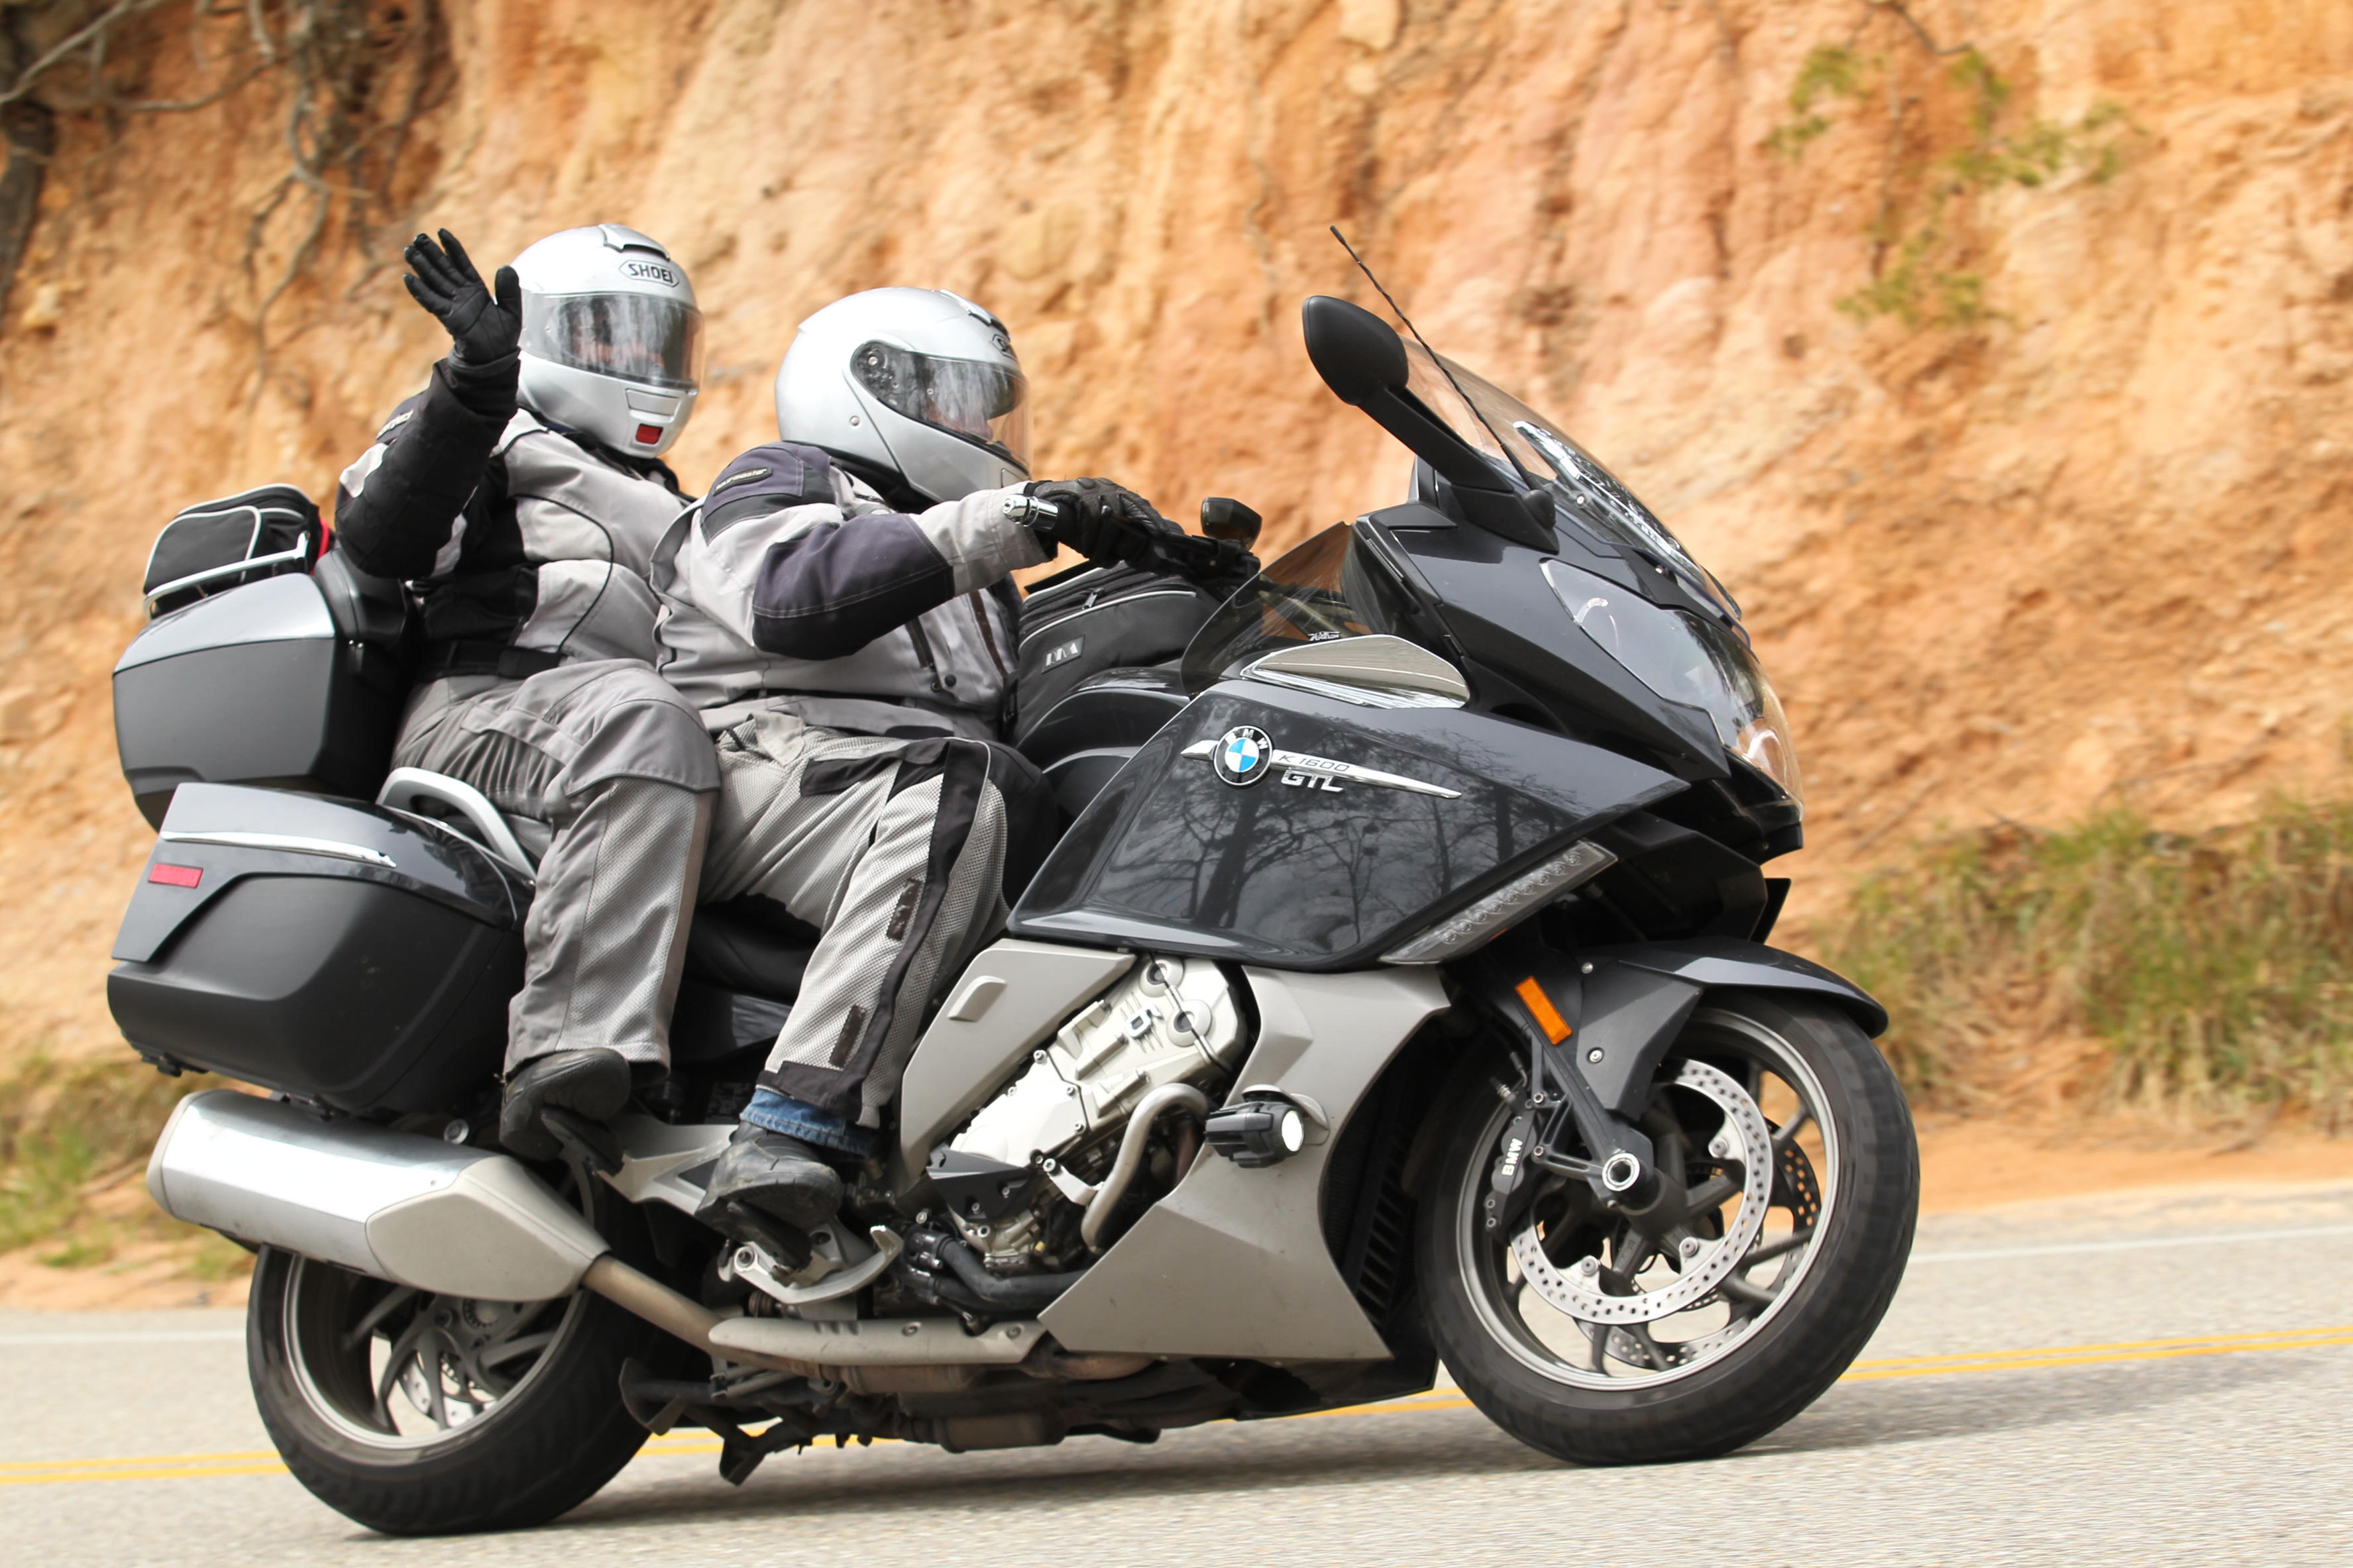 129 Slayer k1600 picture thread - page 2 - bmw luxury touring community